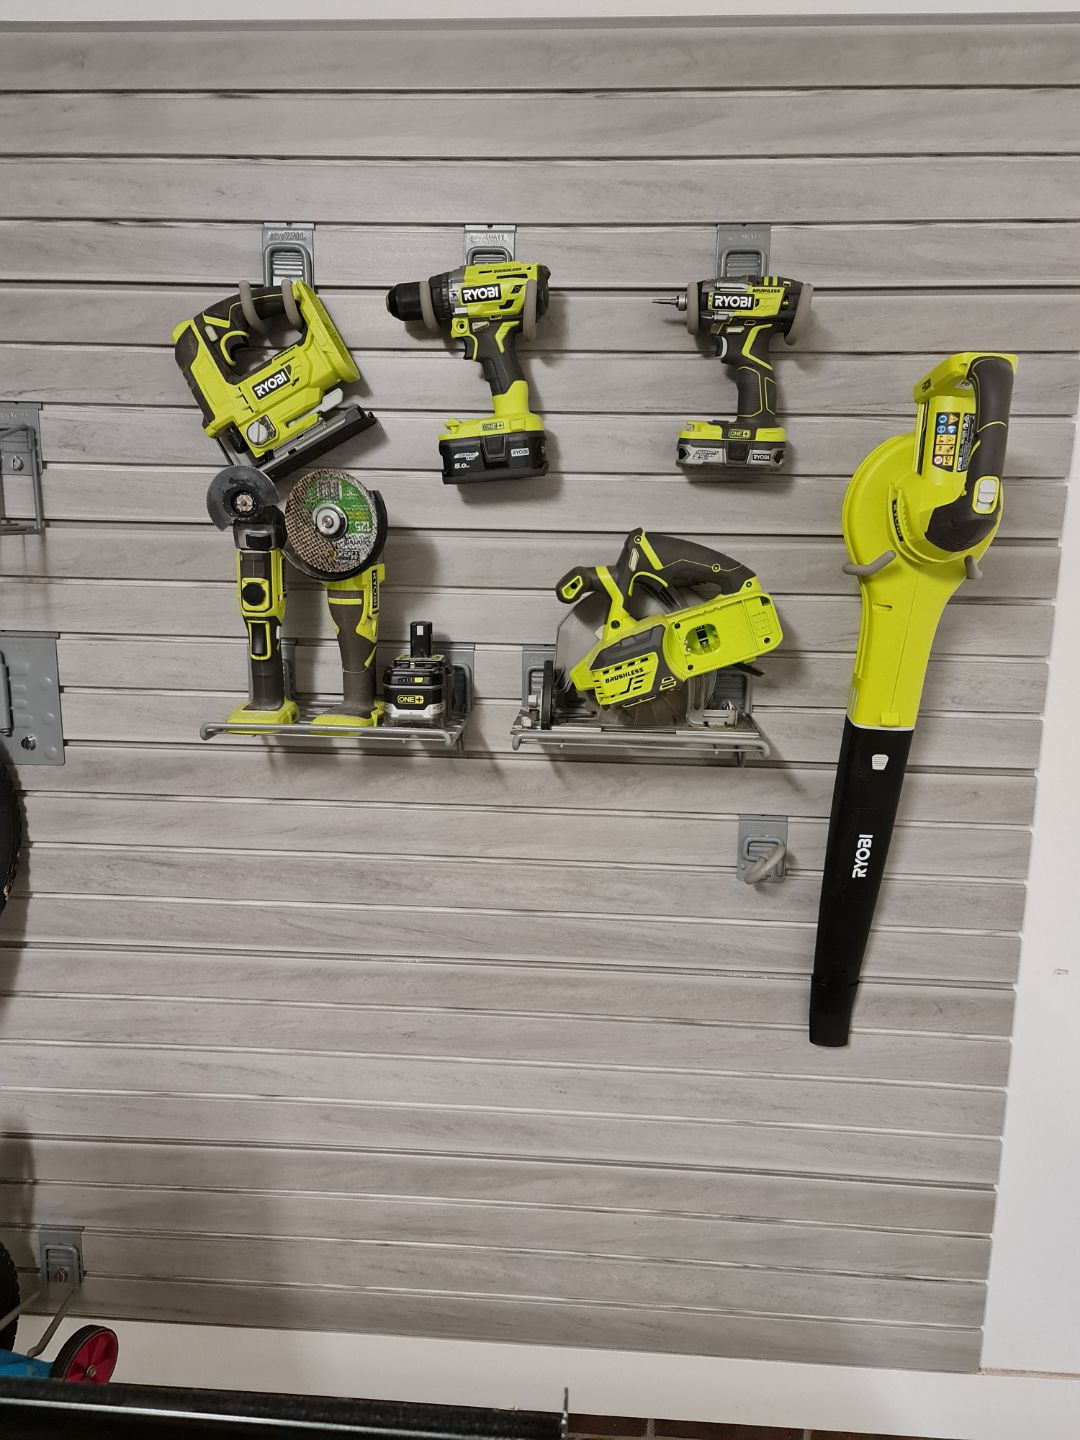 Power Tool Garage Storage